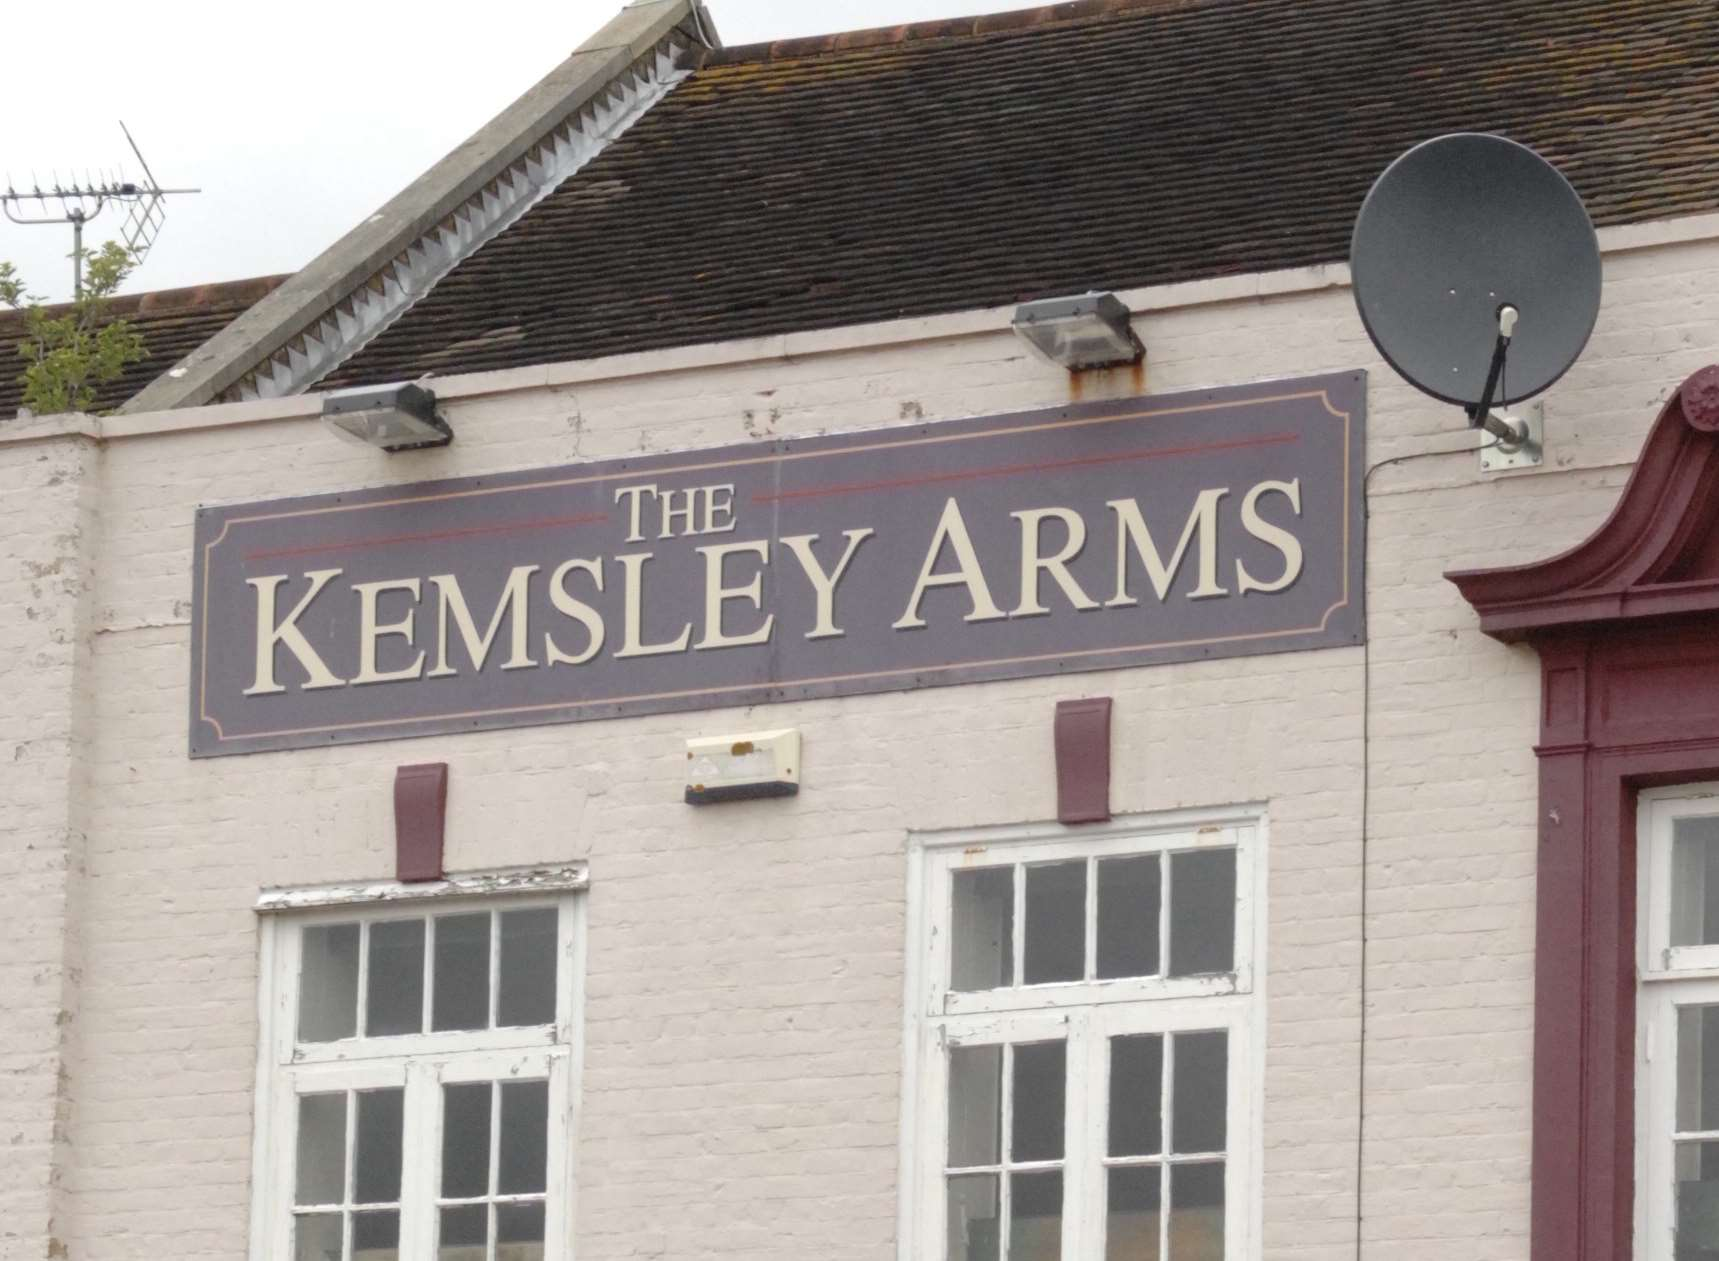 The Kemsley Arms in Kemsley, Sittingbourne. Picture: Chris Davey